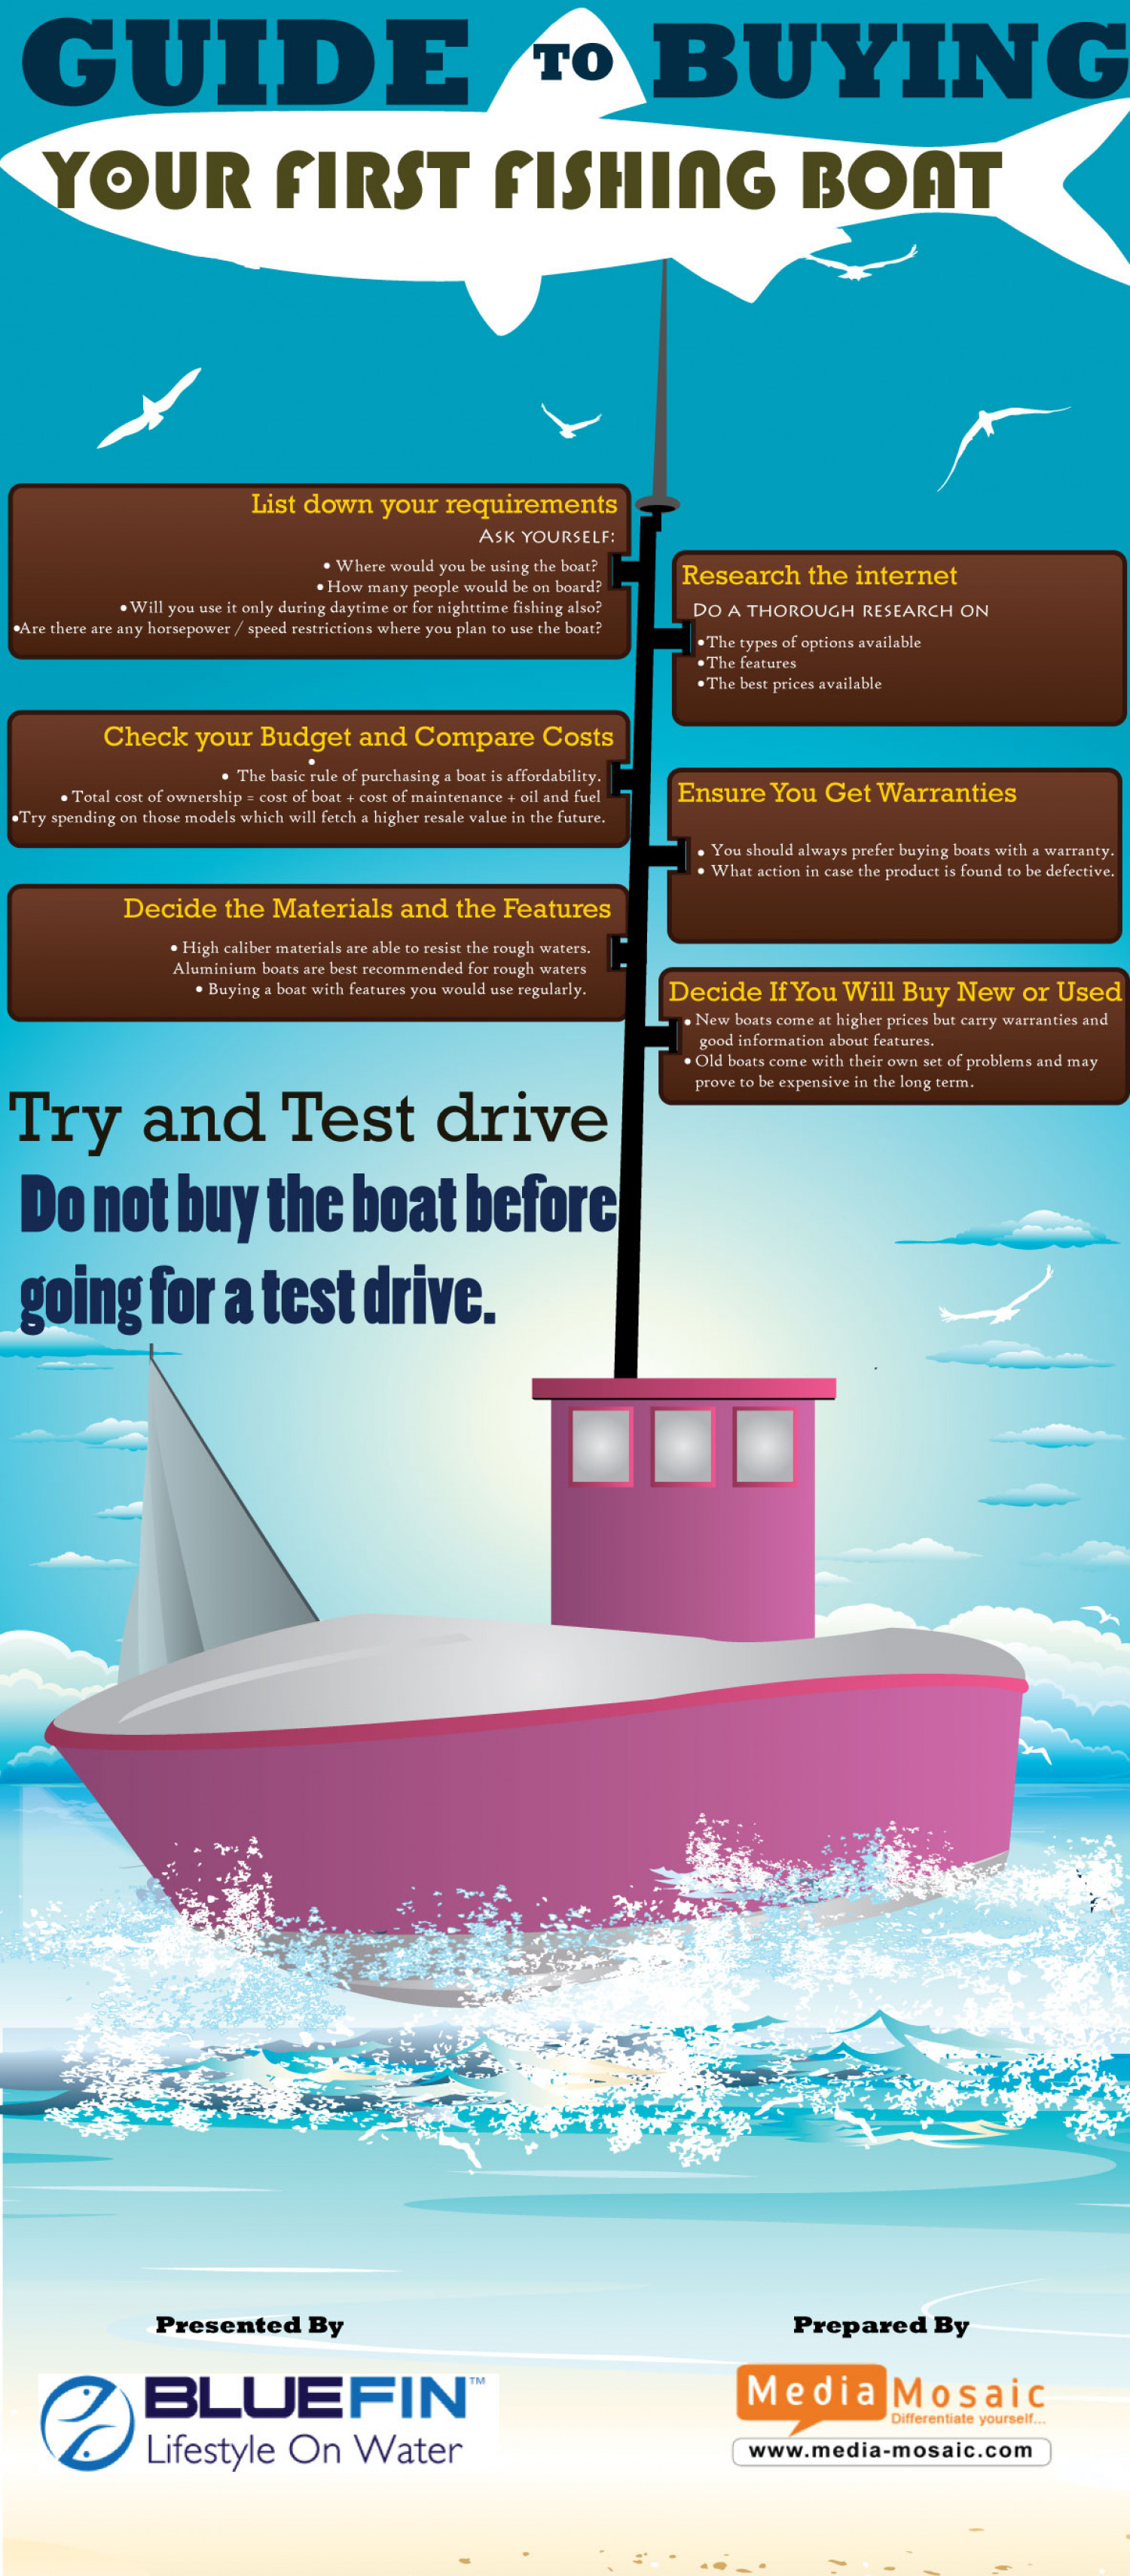 Guide To Buying Your First Fishing Boat Infographic